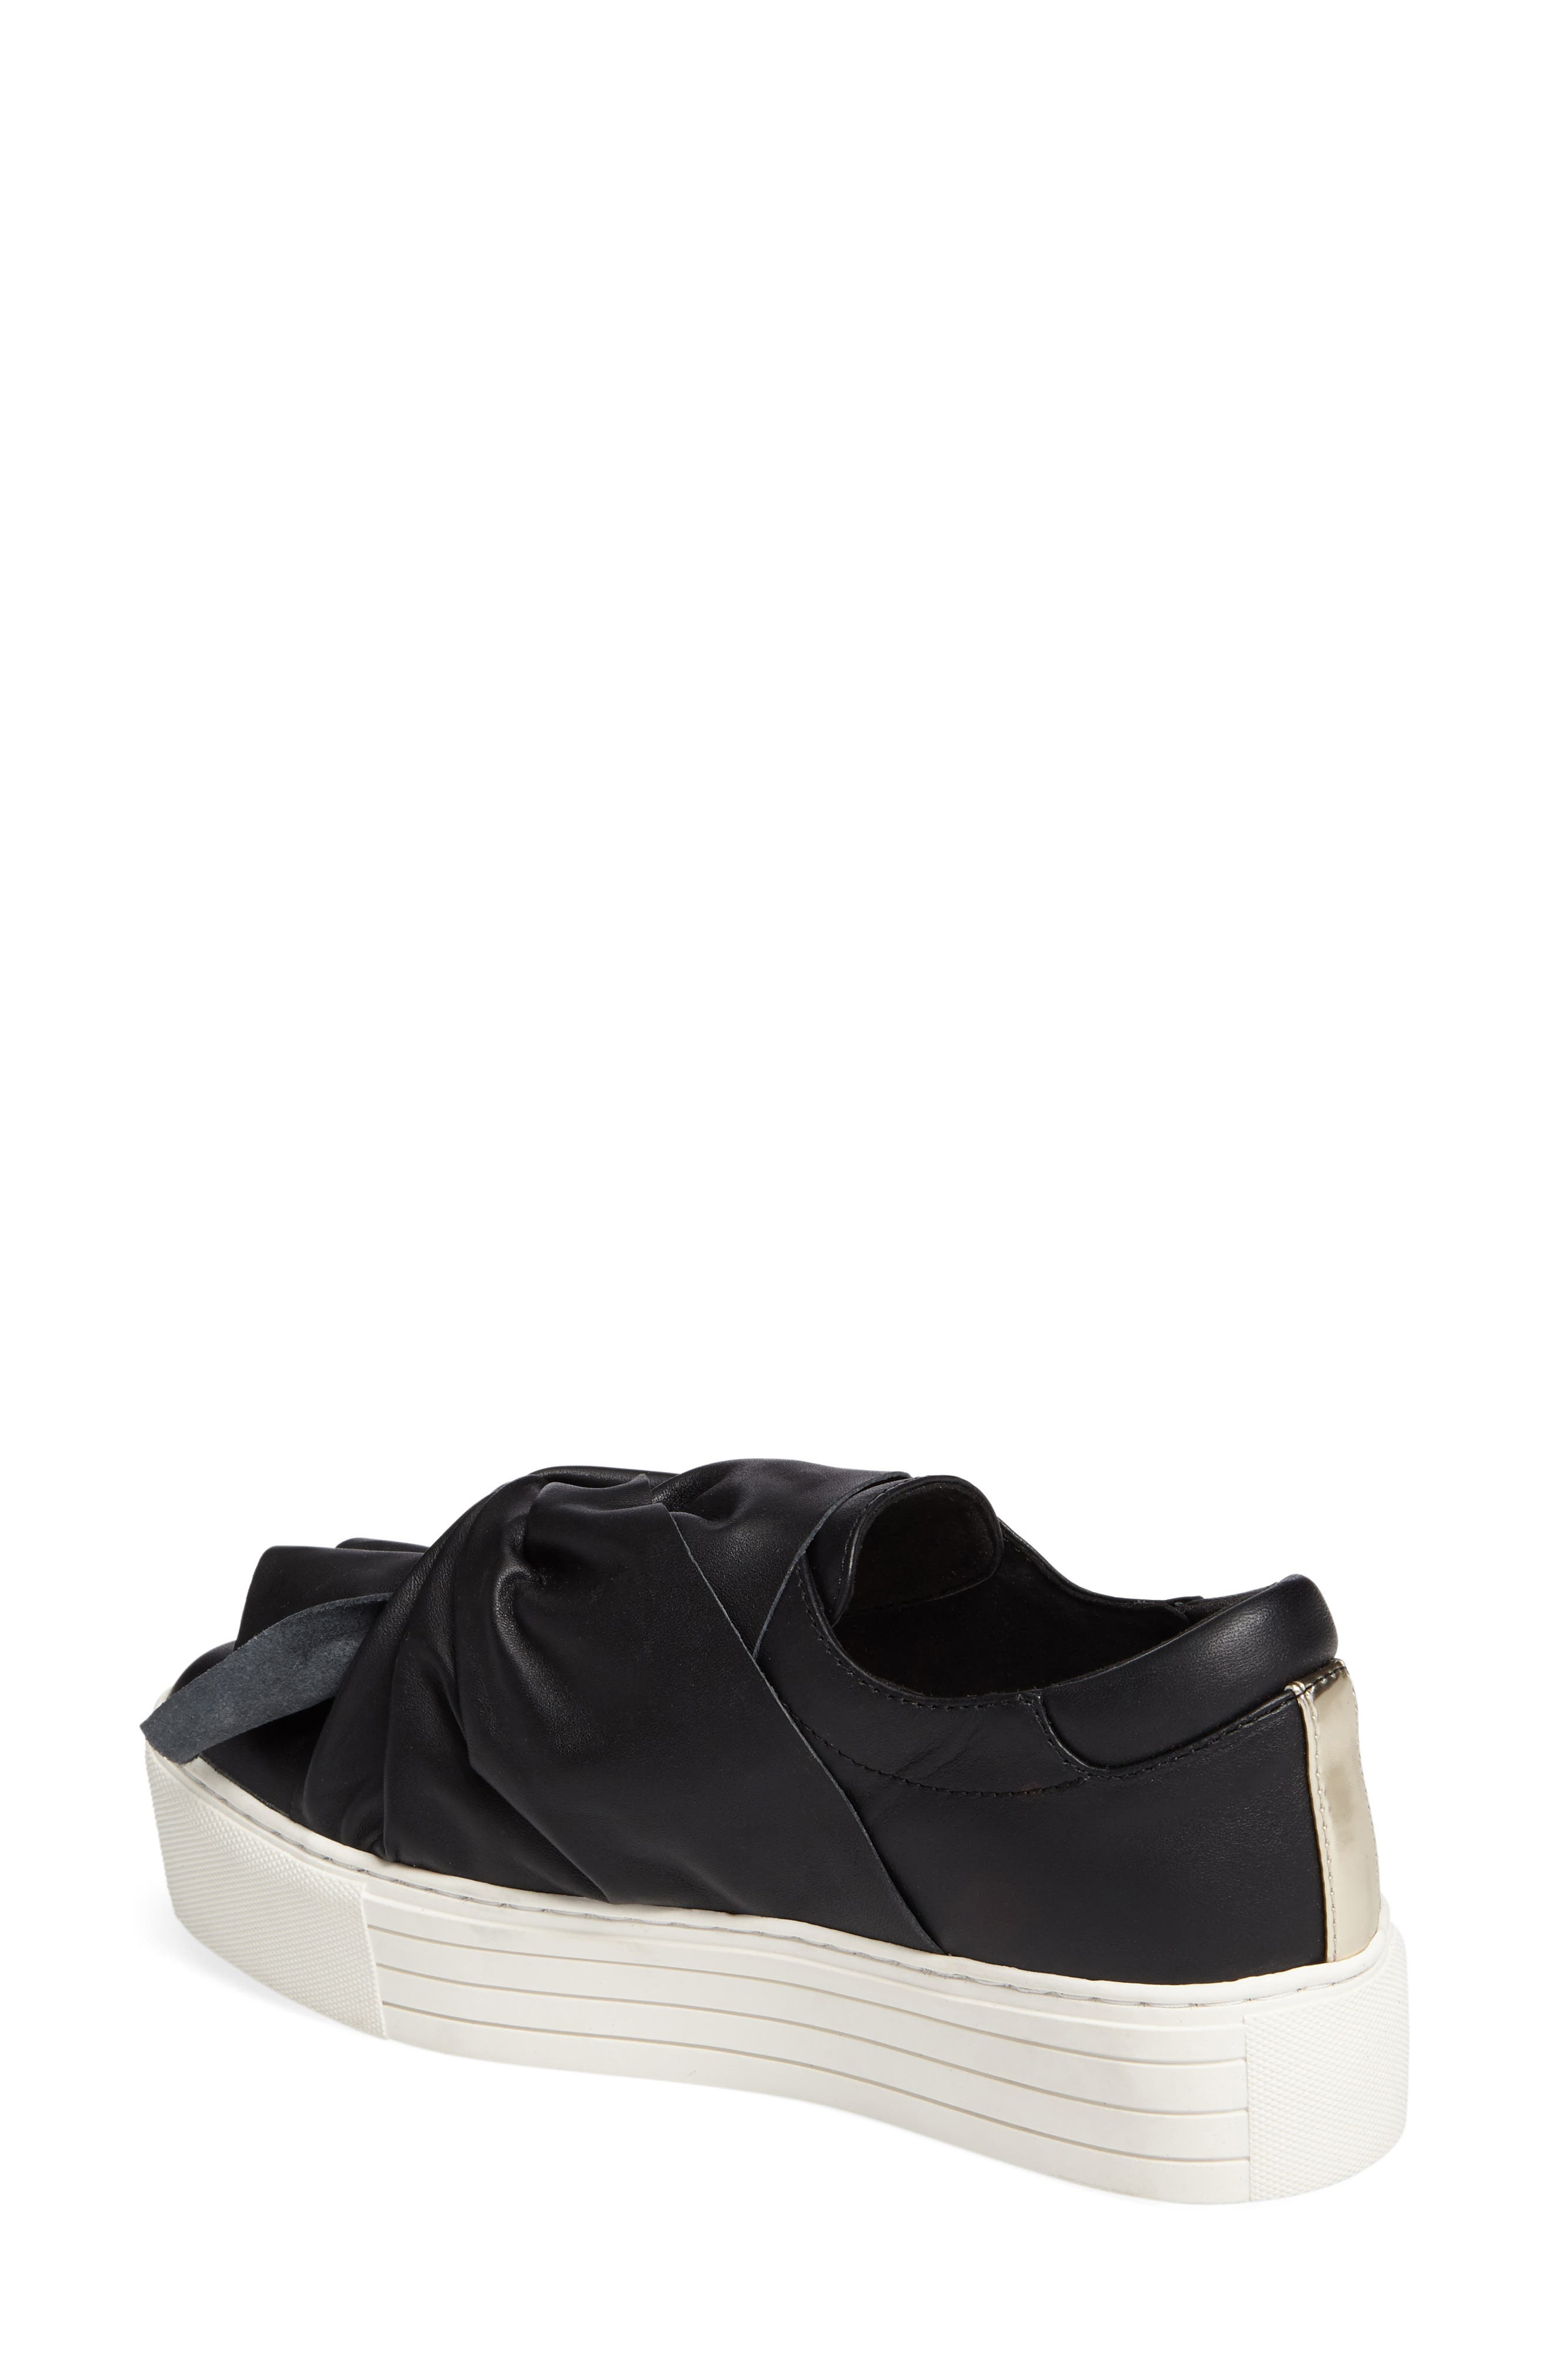 KENNETH COLE NEW YORK, Kenneth Cole Aaron Twisted Knot Flatform Sneaker, Alternate thumbnail 2, color, 001